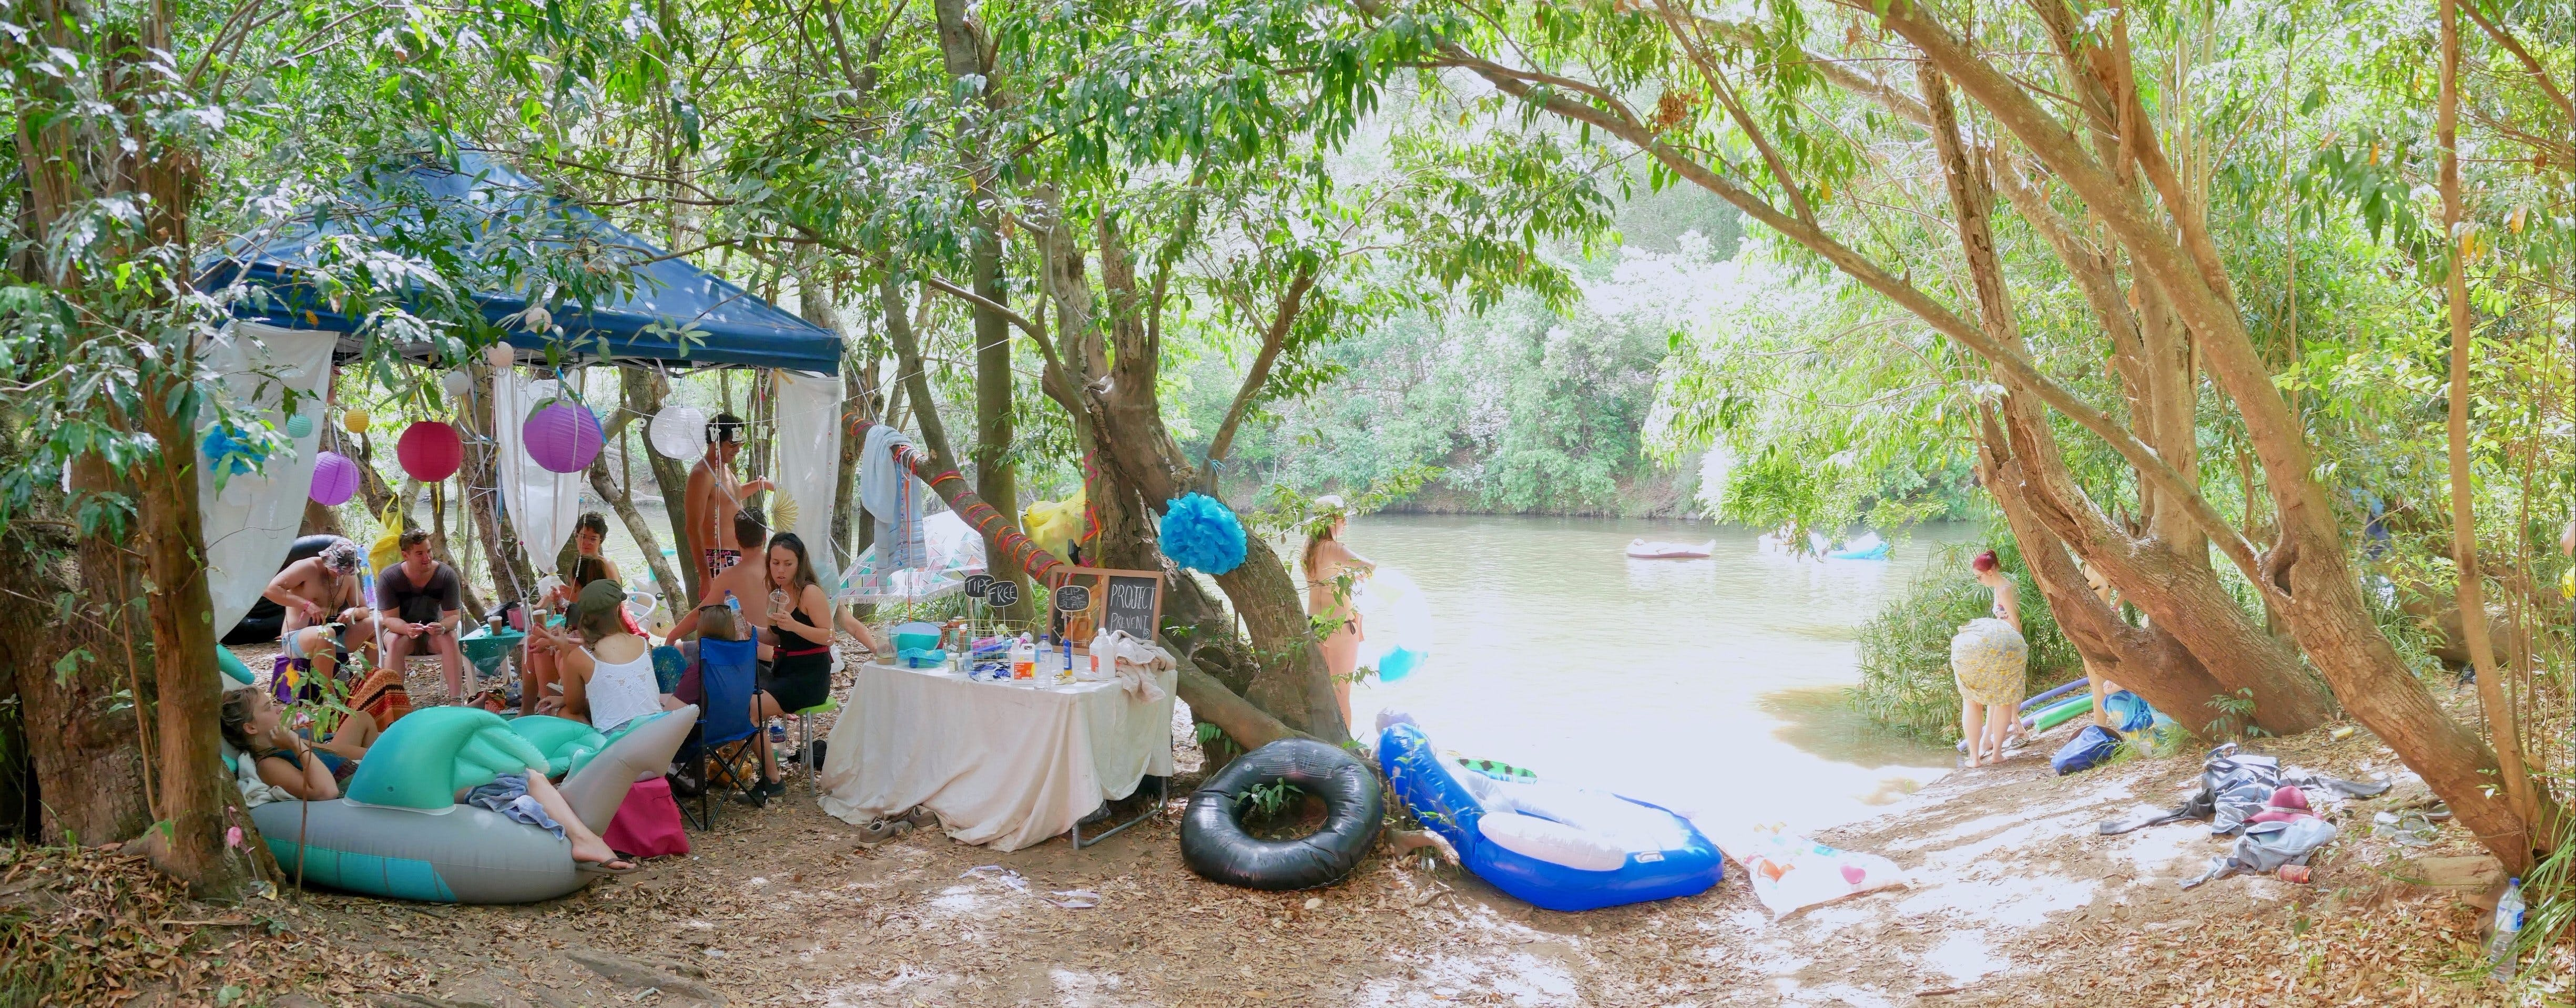 Jungle Love Festival - Accommodation Australia